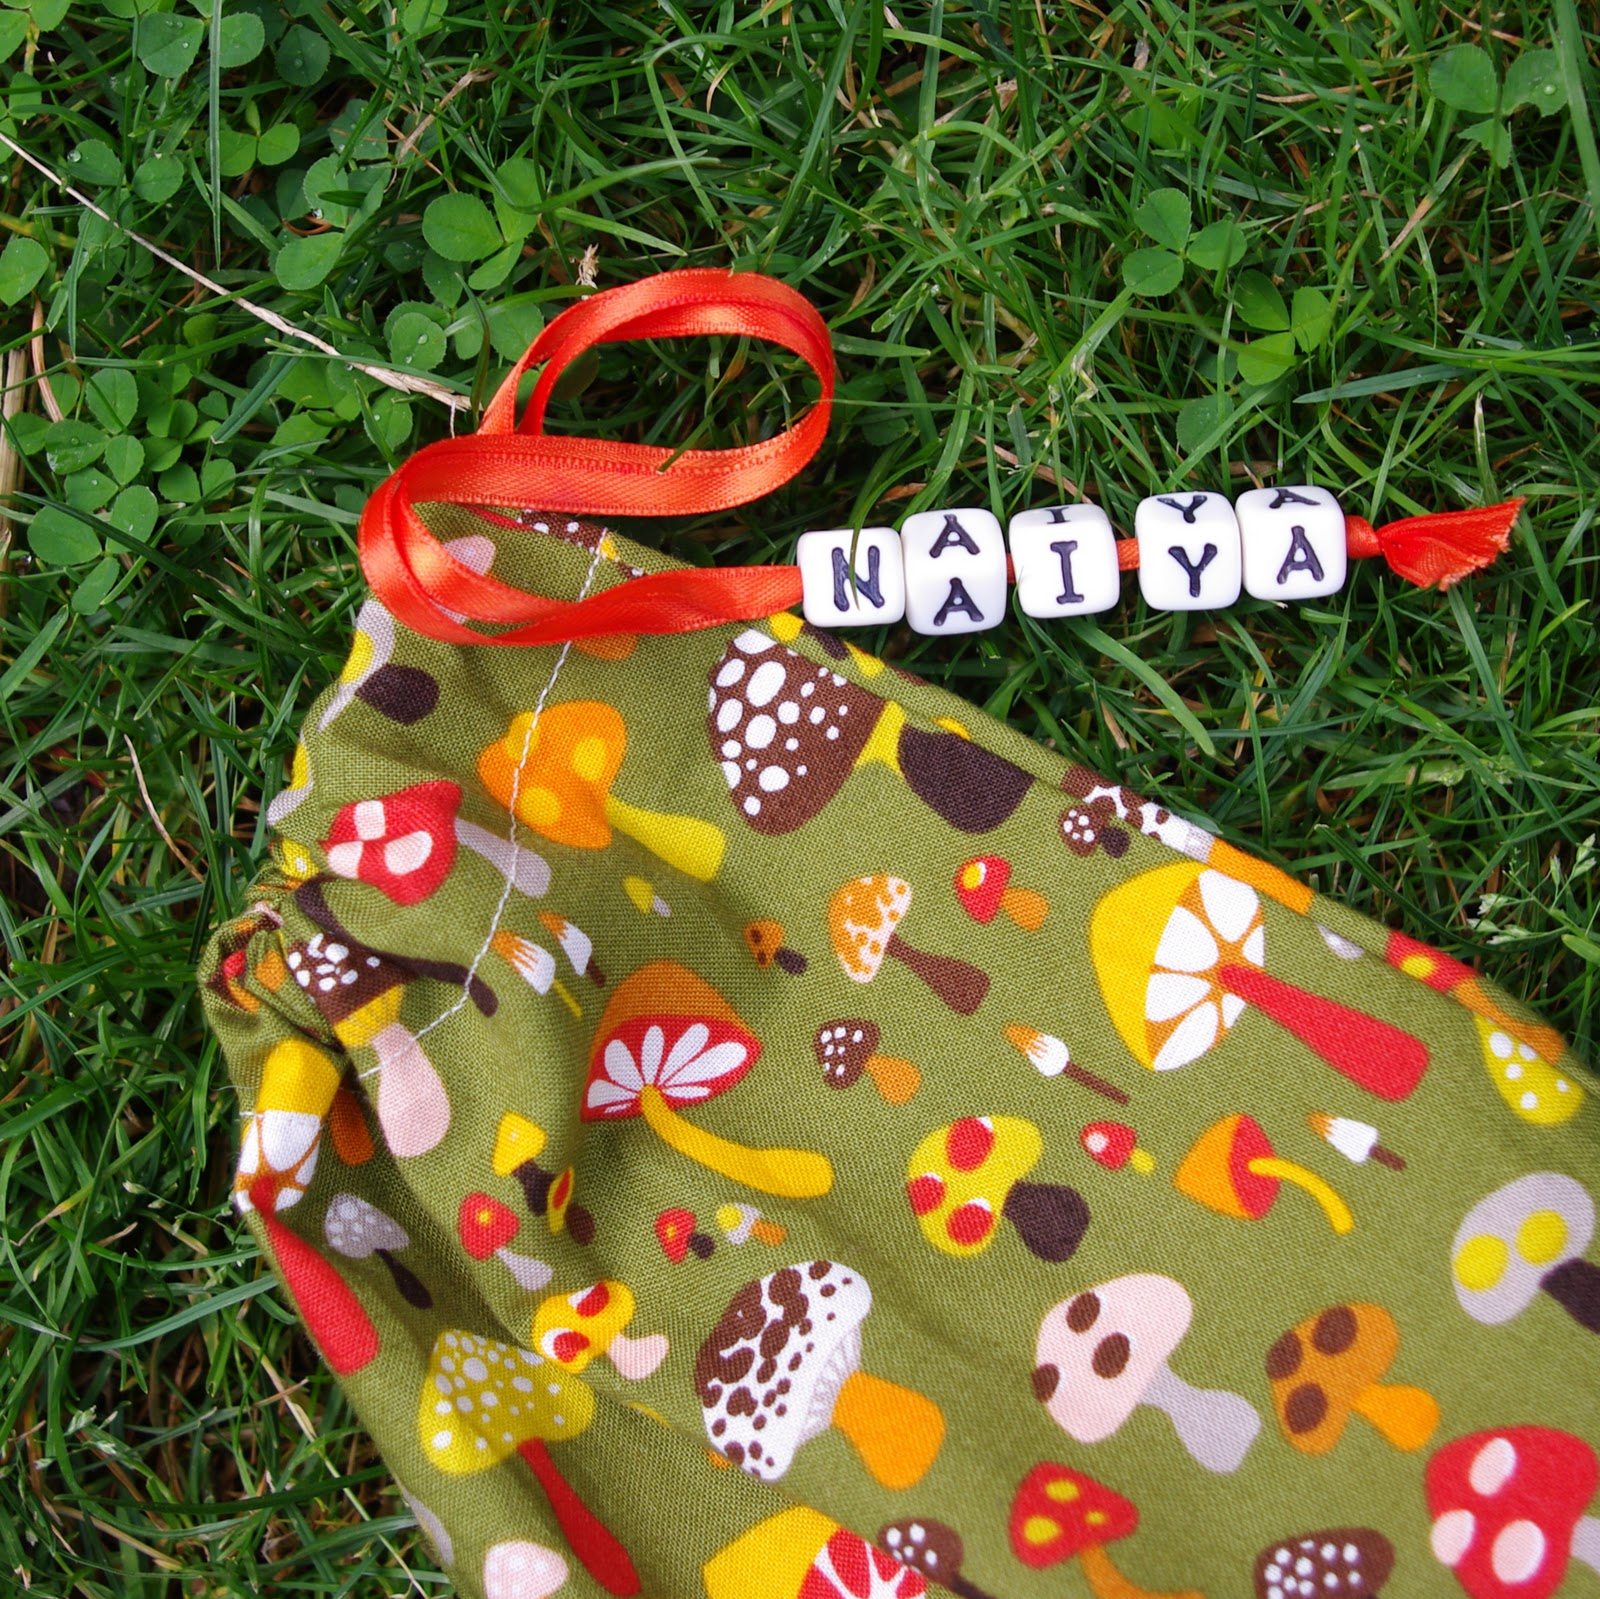 Name tag craft ideas - I Got The Beads At The Craft Store And This Was A Handy Feature That Proved Useful In Helping Avoid Conflict Over Which Bag Belonged To Each Child After